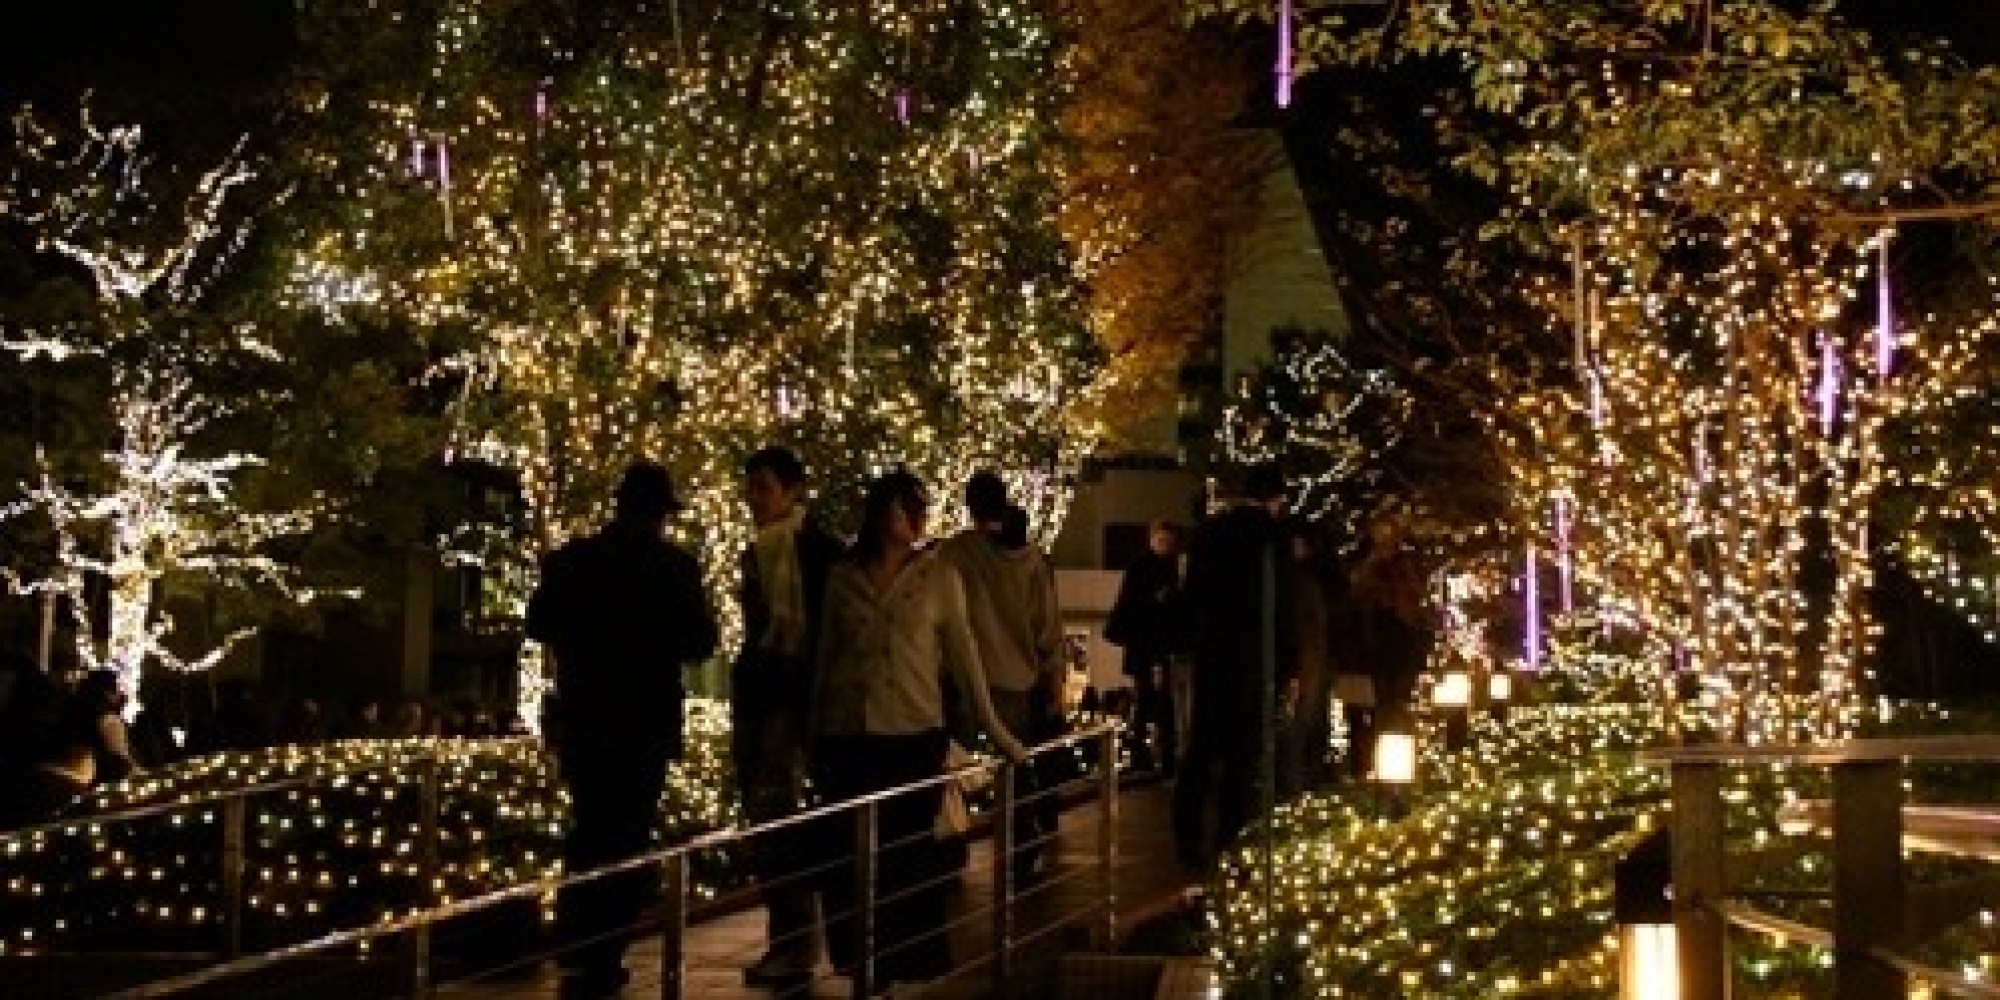 Christmas in Tokyo: Holiday Illuminations Go for the Glow | HuffPost